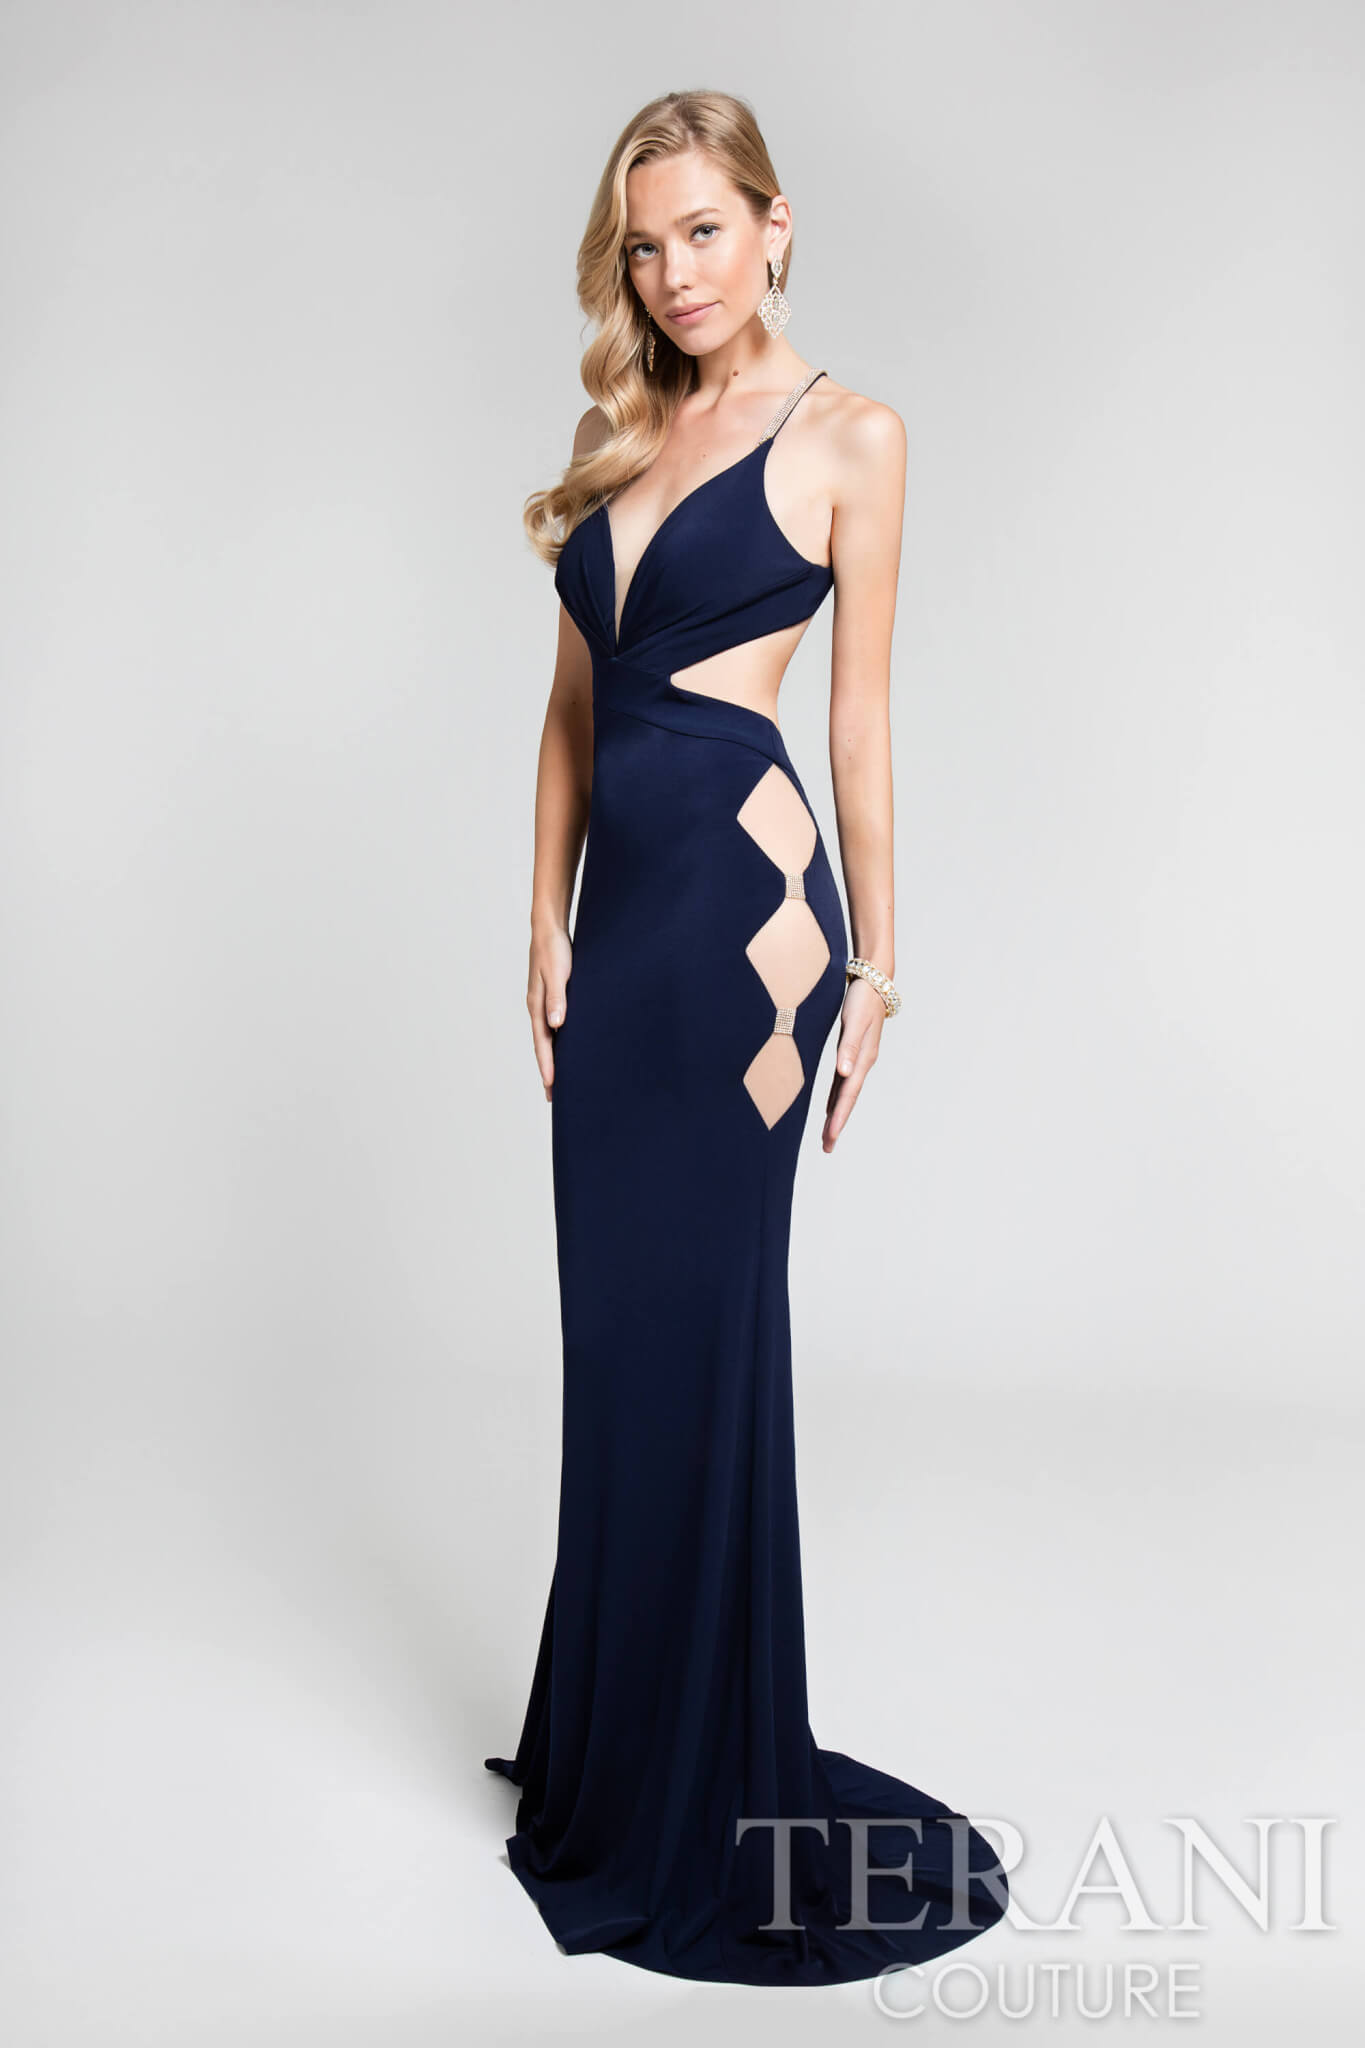 Wedding And Prom Dresses Near Me : Images of formal dress stores near me watch out there s